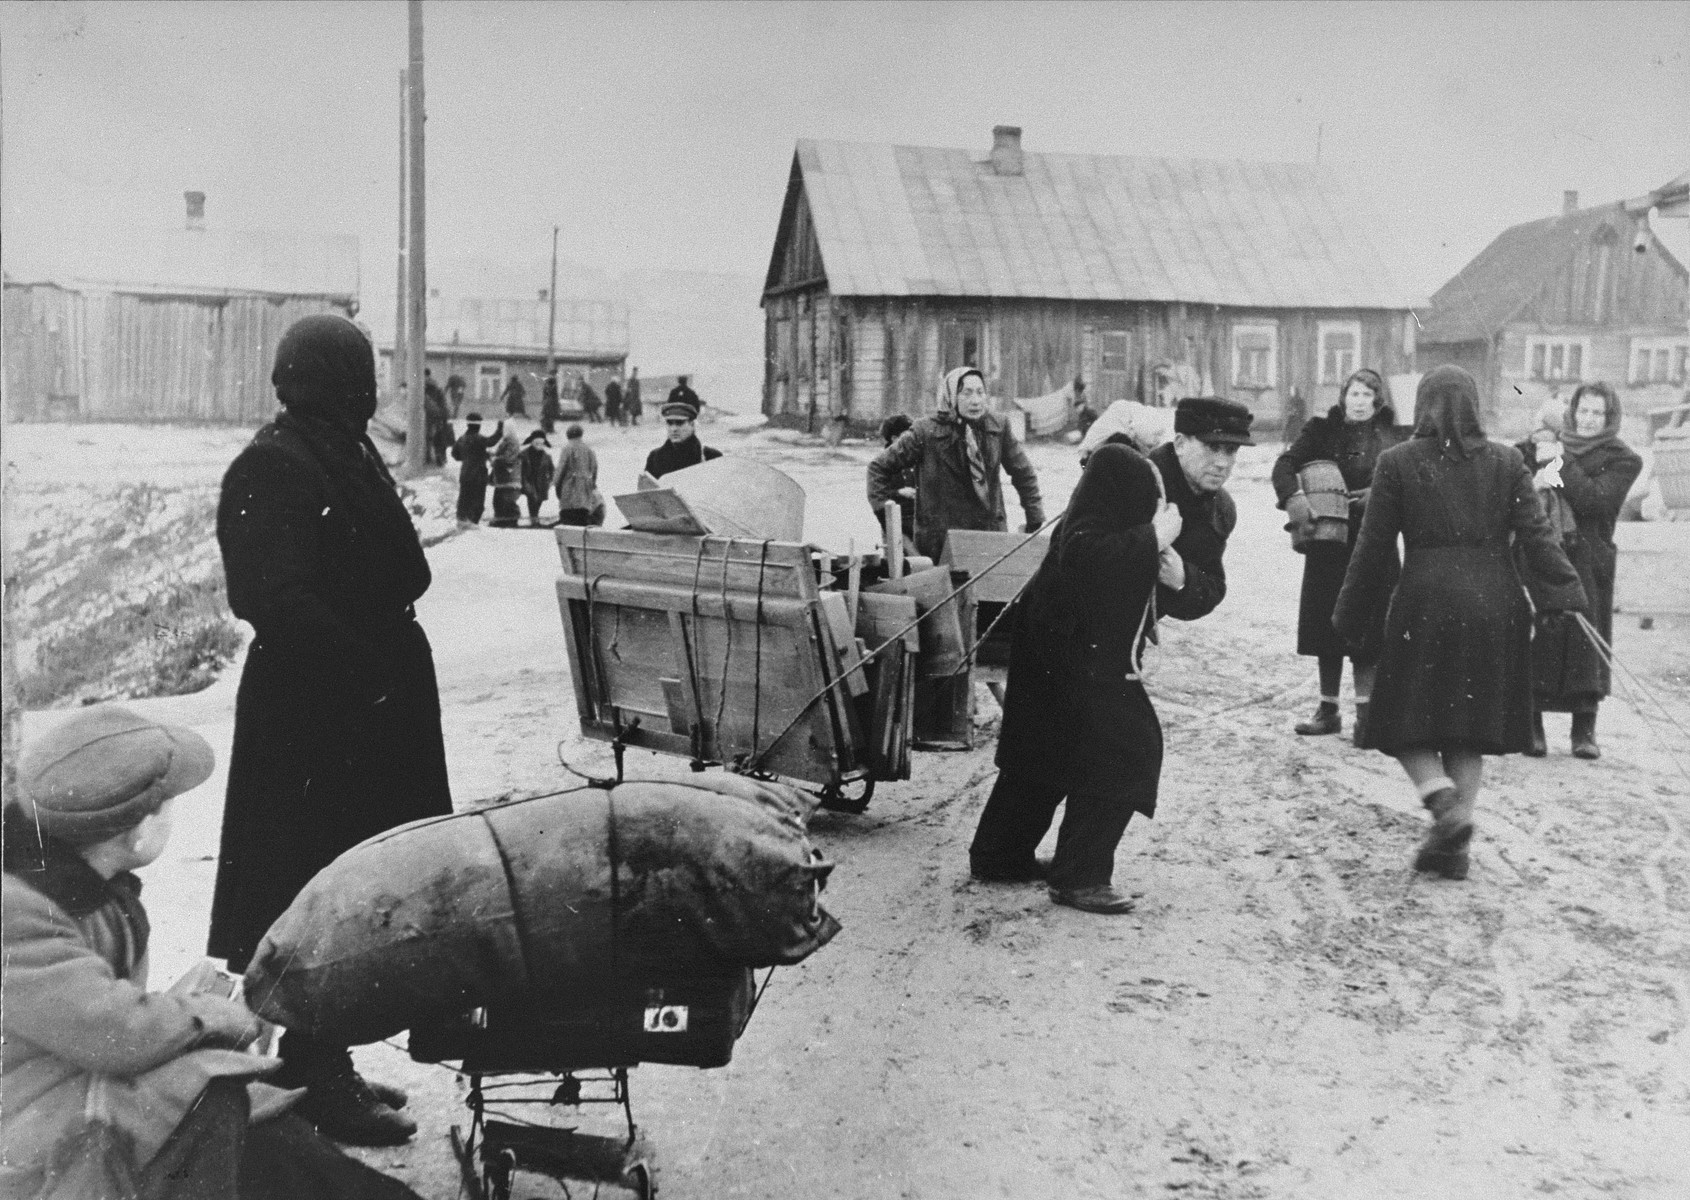 Jews move their belongings into the Kovno ghetto.  The man pulling the disassembled wardrobe is George Kadish's brother-in-law.  He never put it together because there was not enough space in his new quarters. Clothes were hung from nails (made out of barbed wire) in the wall.